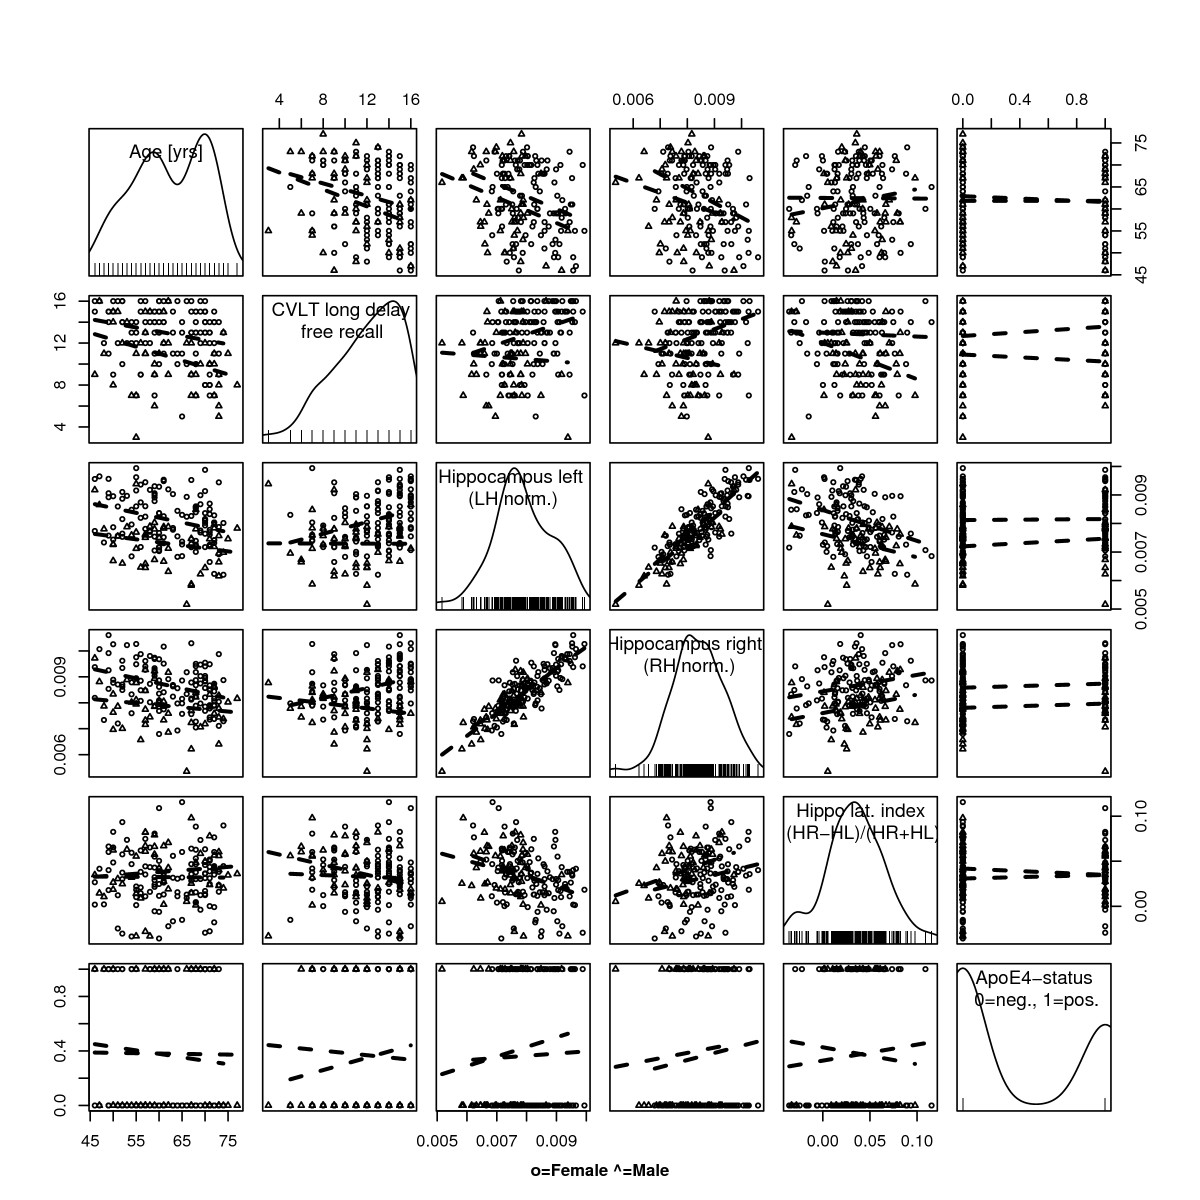 http://static-content.springer.com/image/art%3A10.1186%2F1471-2342-9-17/MediaObjects/12880_2009_Article_75_Fig5_HTML.jpg